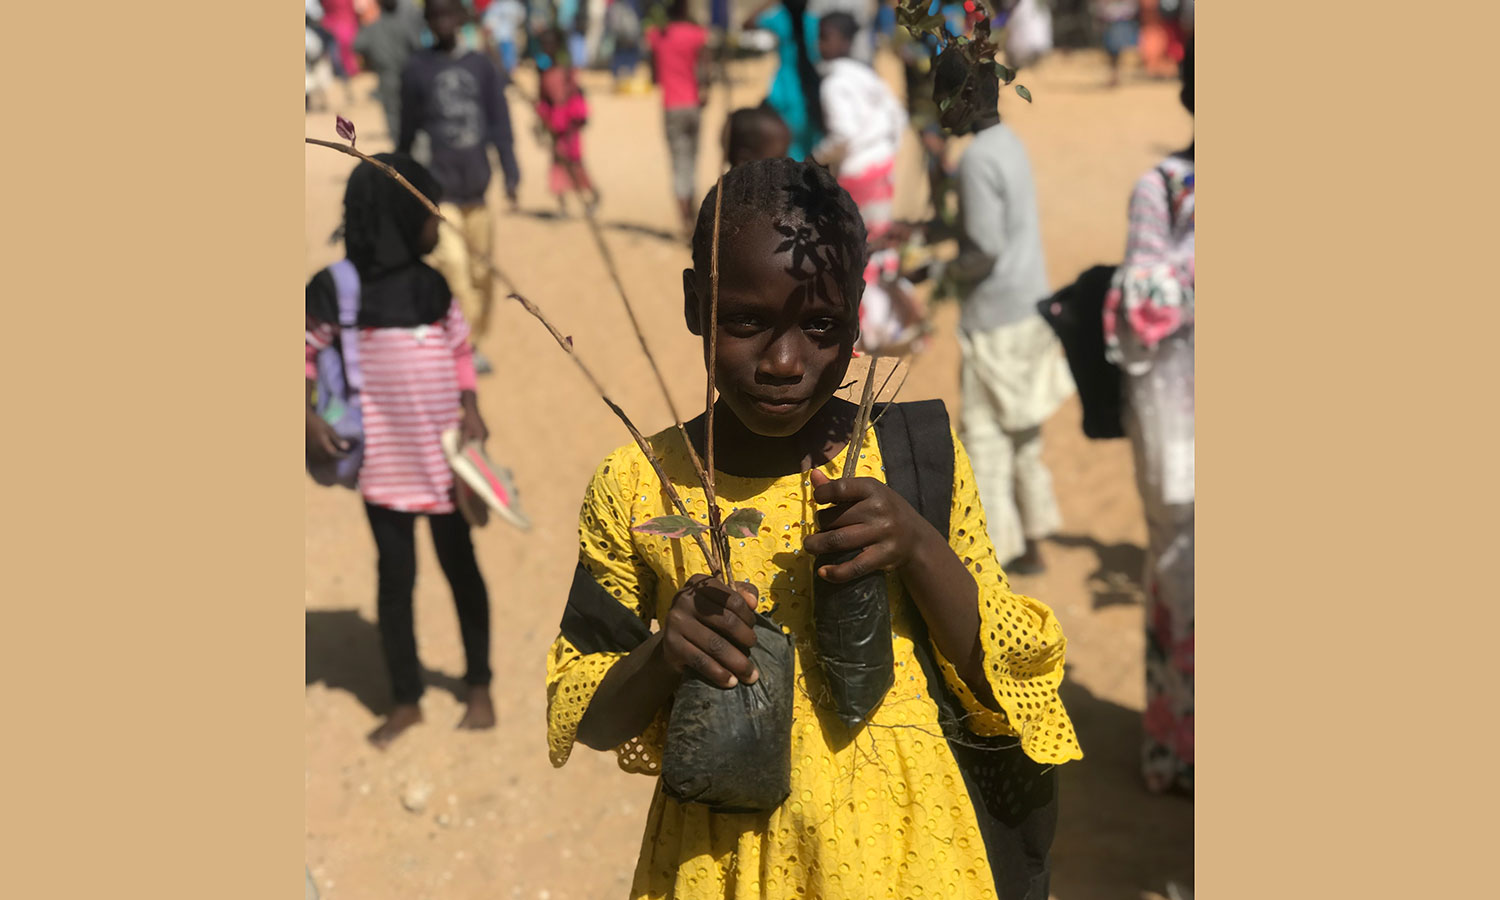 Portrait.-3rd-place.-TIED.-Djeneba-Ballo.13.Bois-D'ecole.plant-tree-at-the-elementary-school-and-this-particular-students-was-helpingjpeg